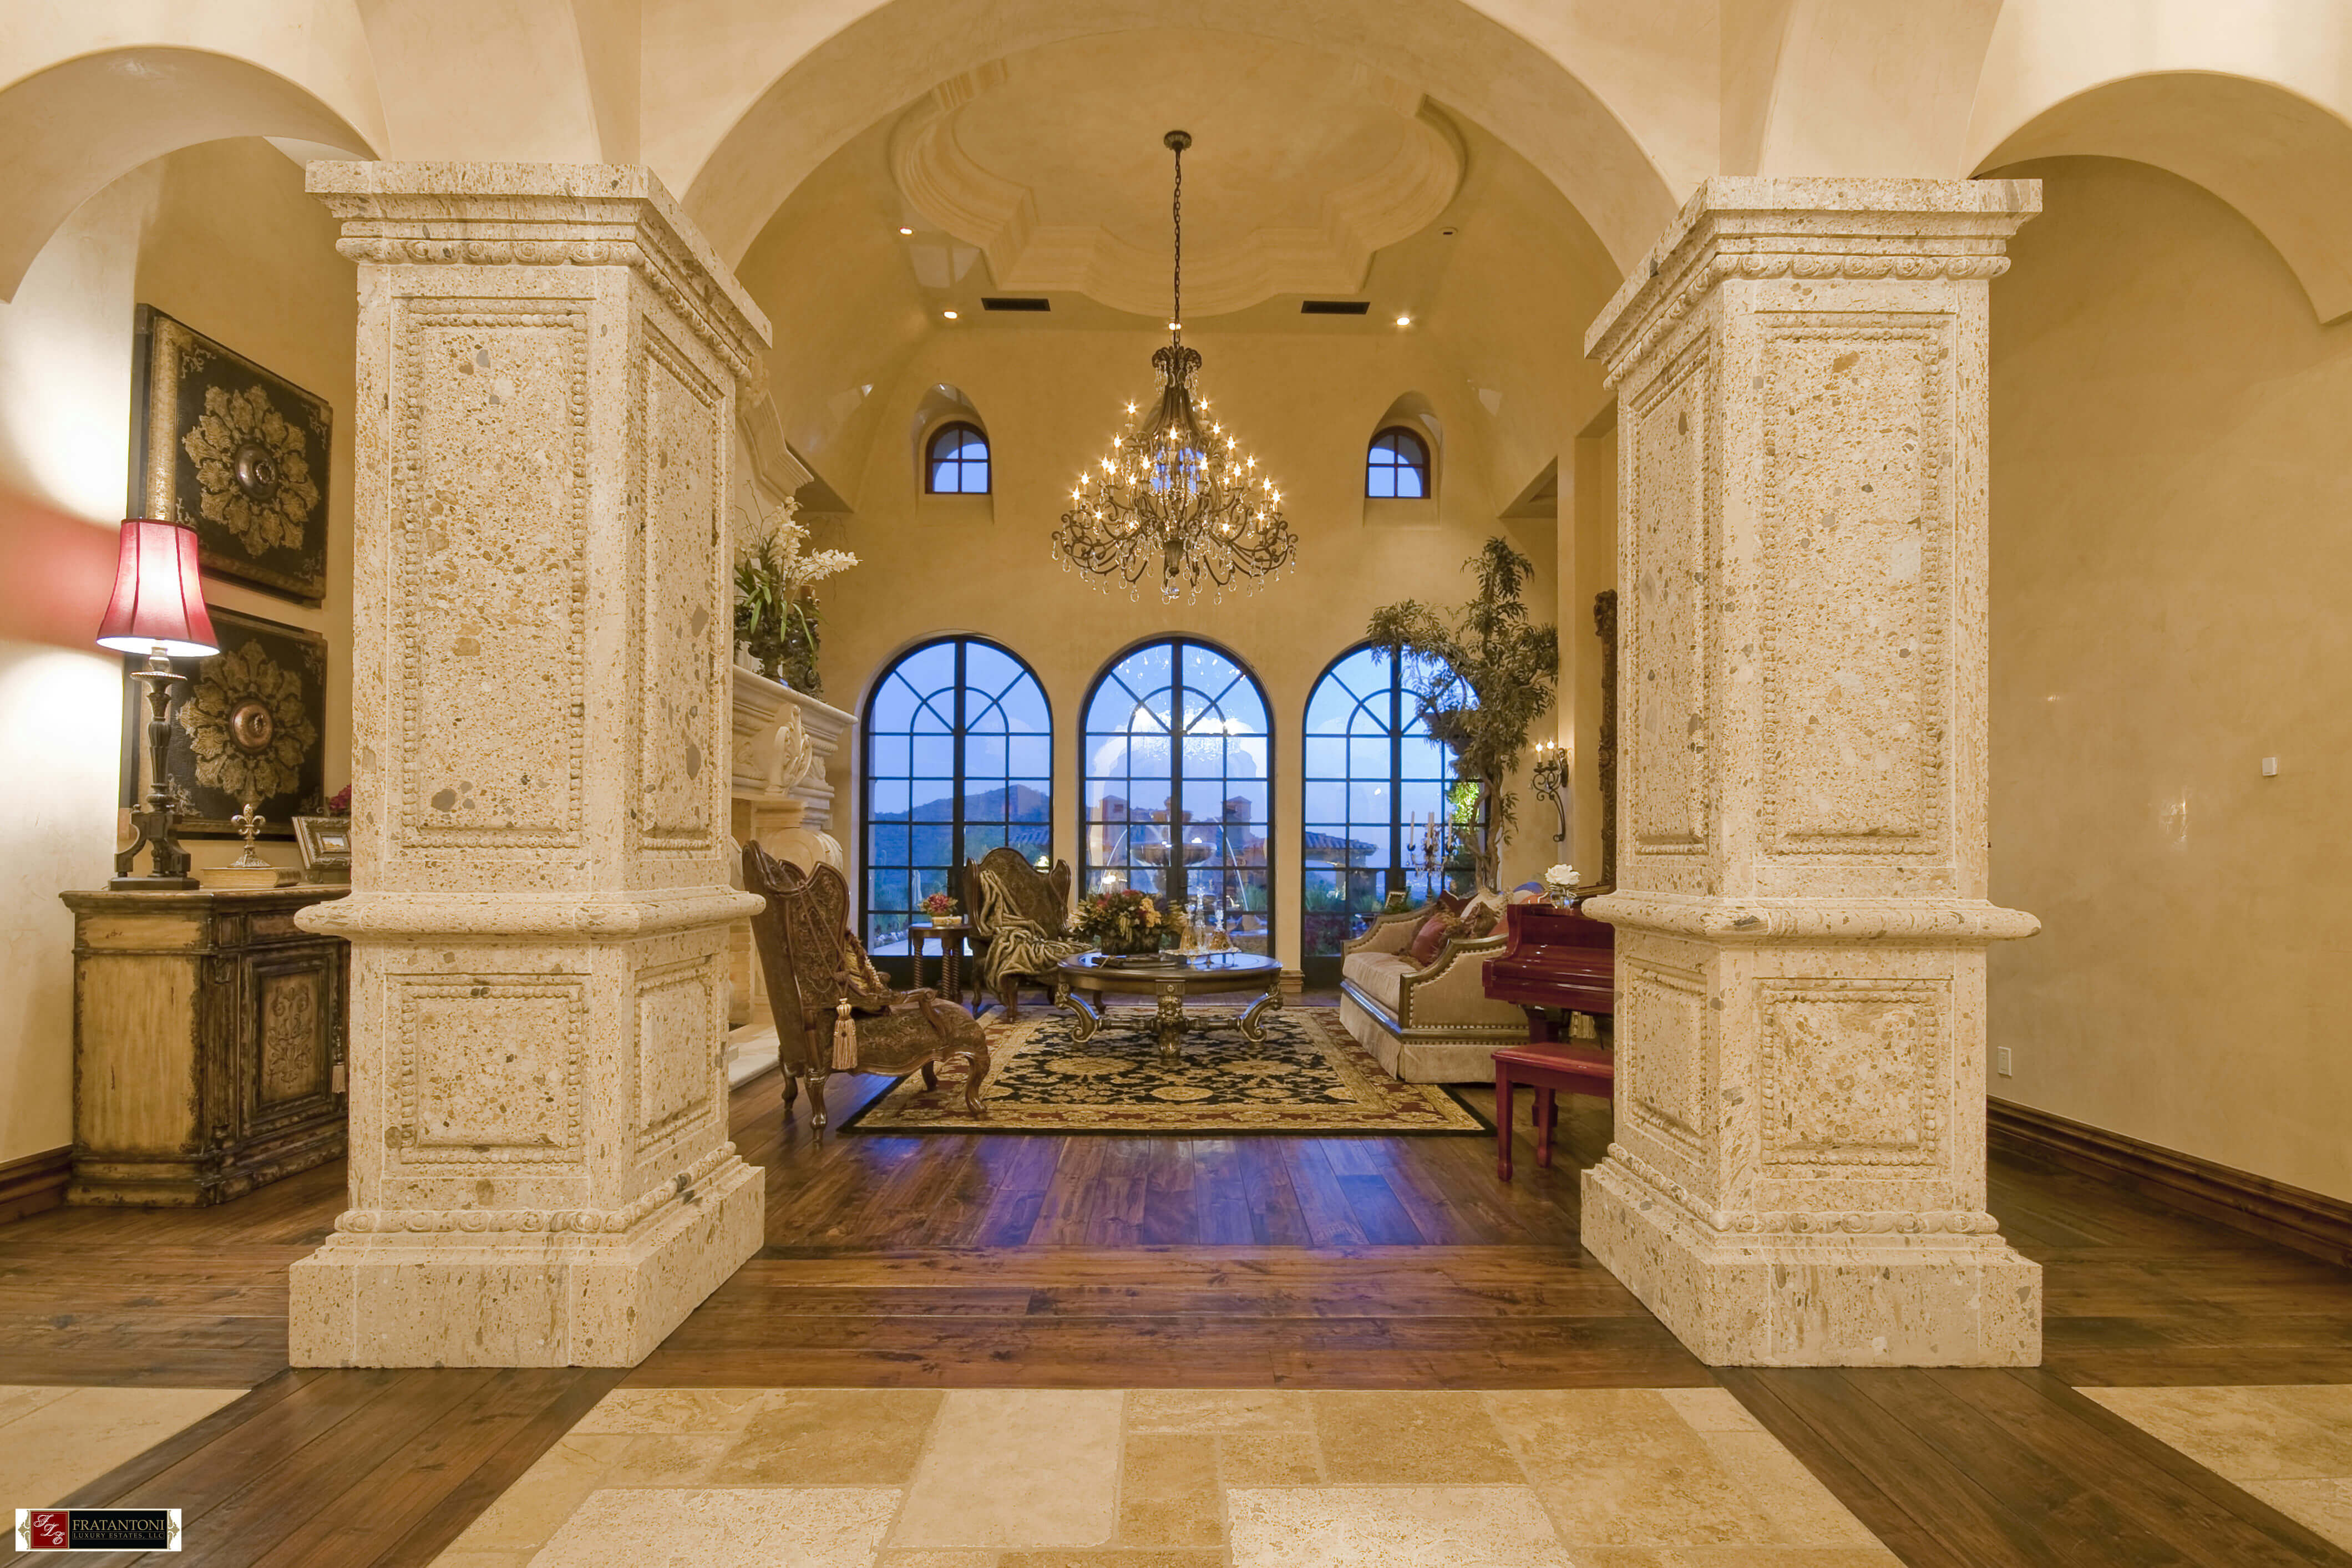 2B-Square-Raised-Panel-Tuscan-Style-Columns-at-Foyer-in-Oro-Cantera-Stone